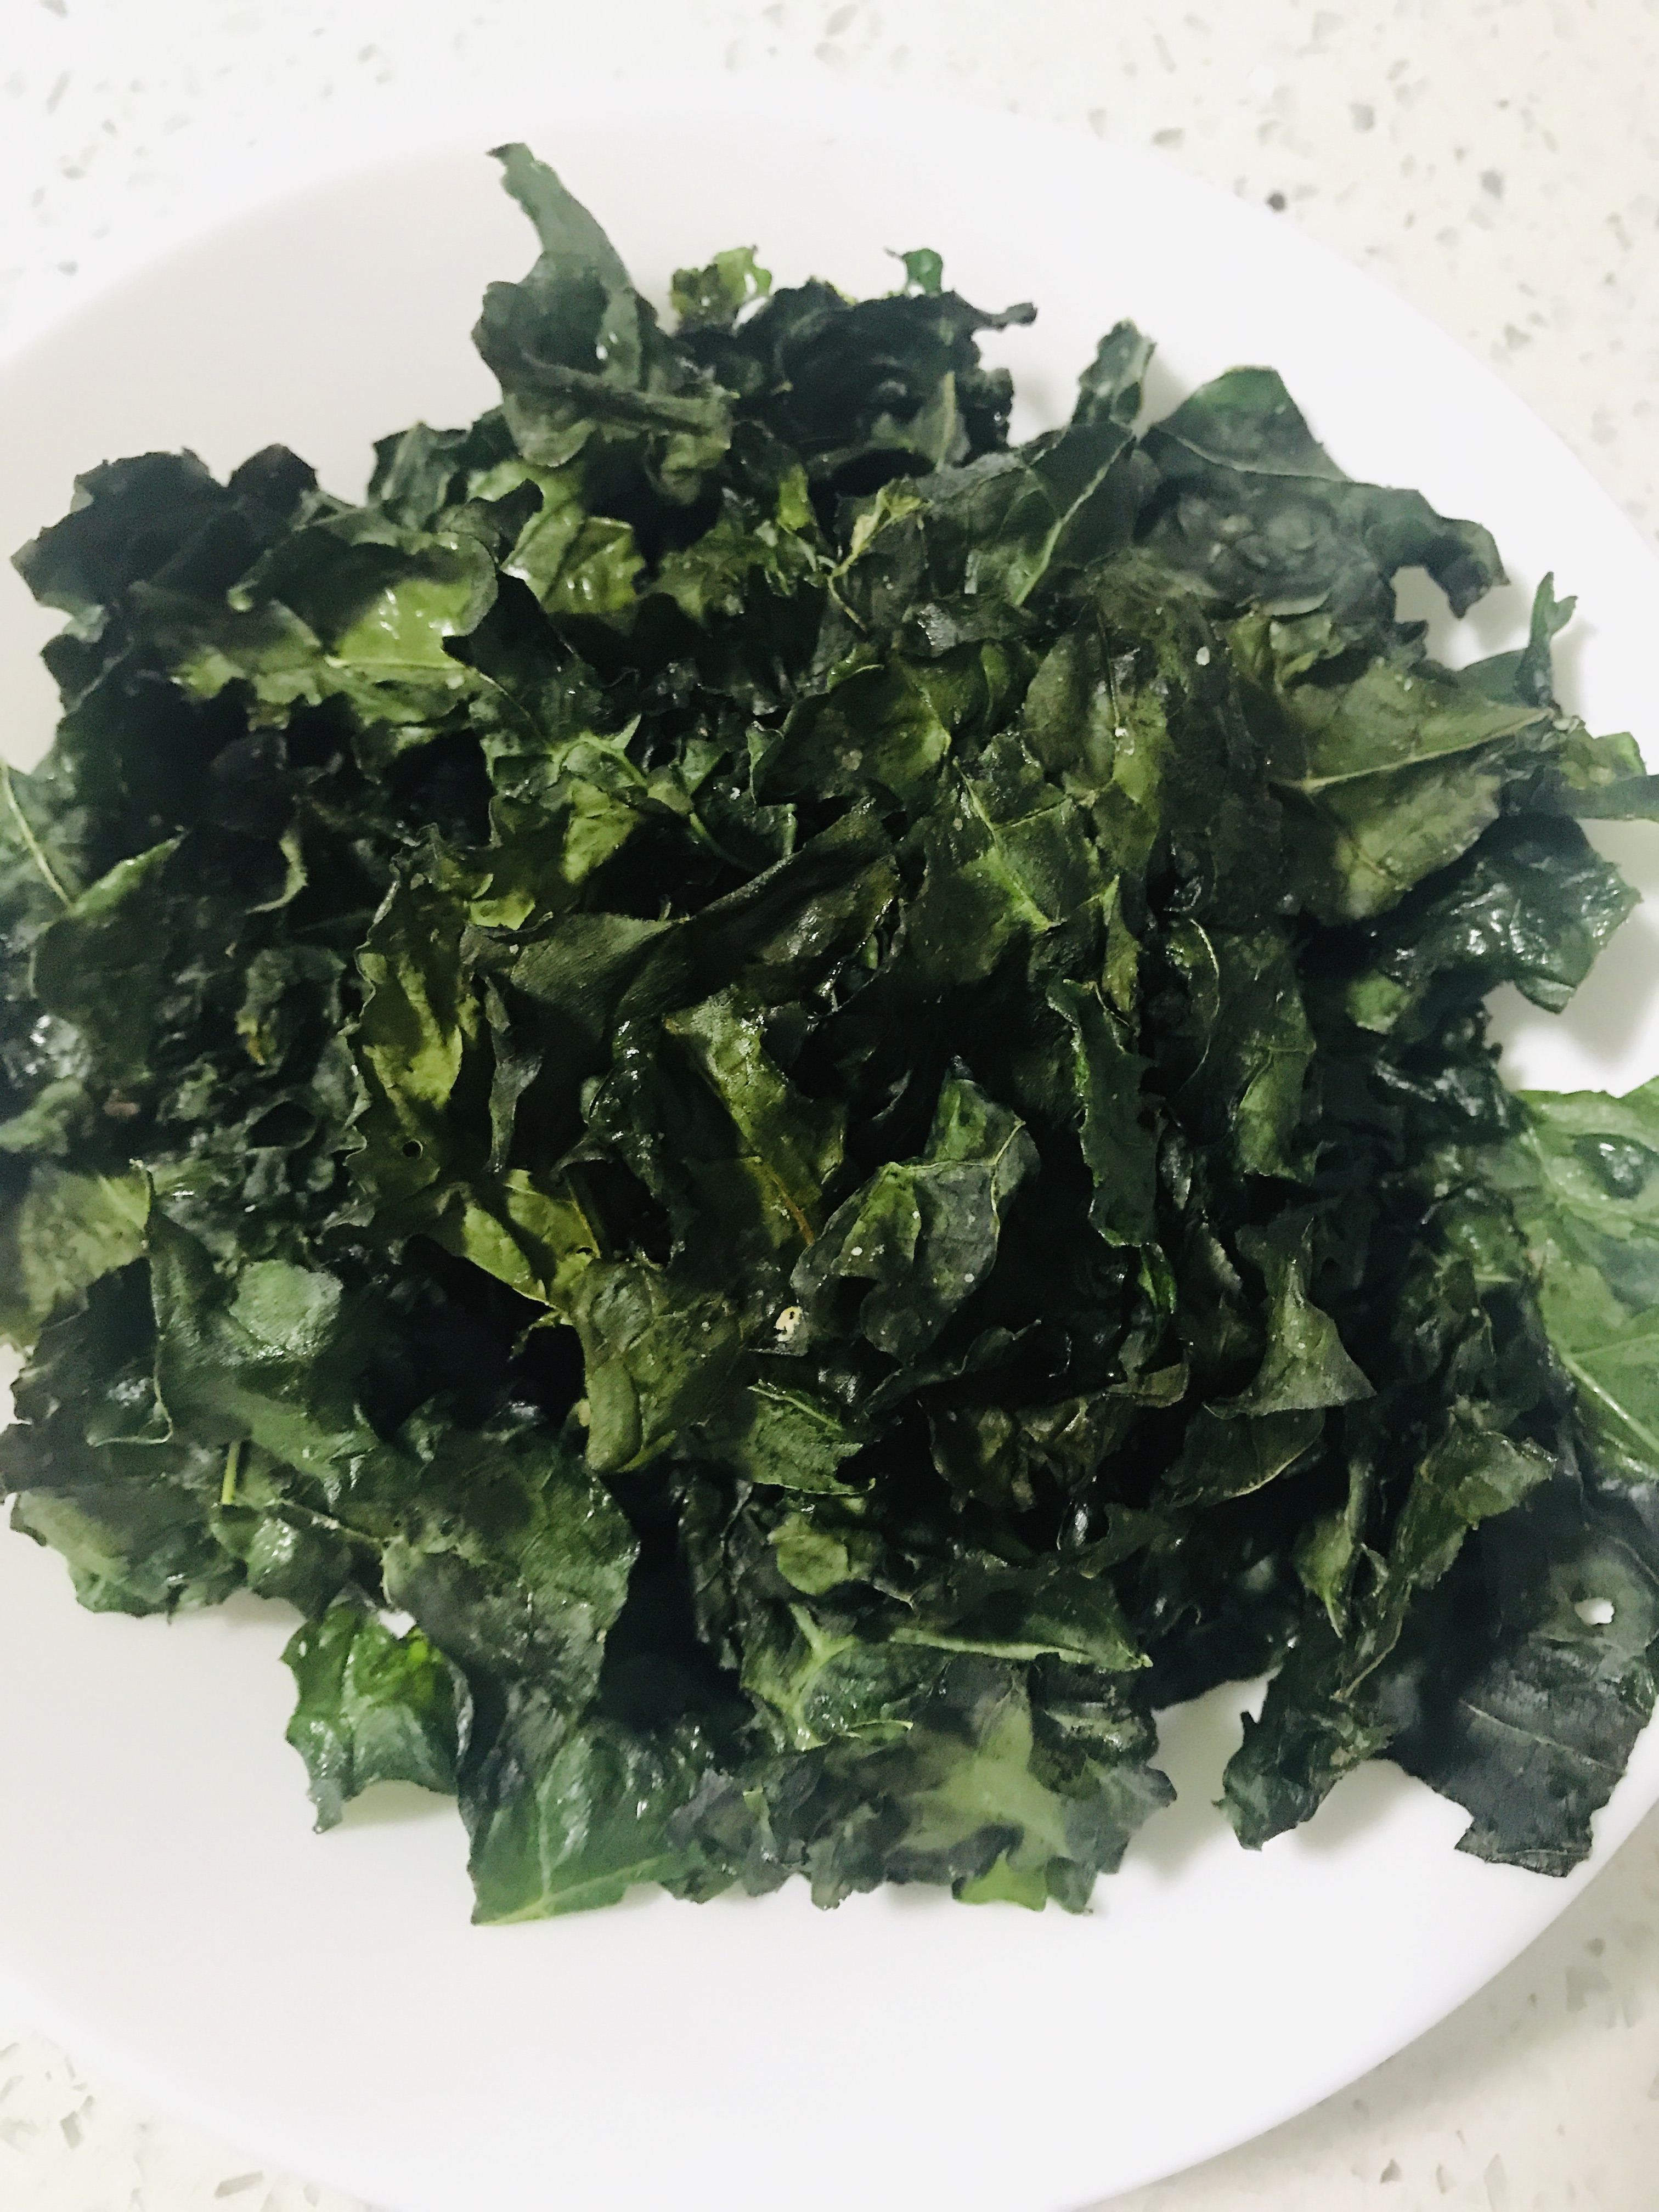 Baked Kale Chips Yeolie Loey Park